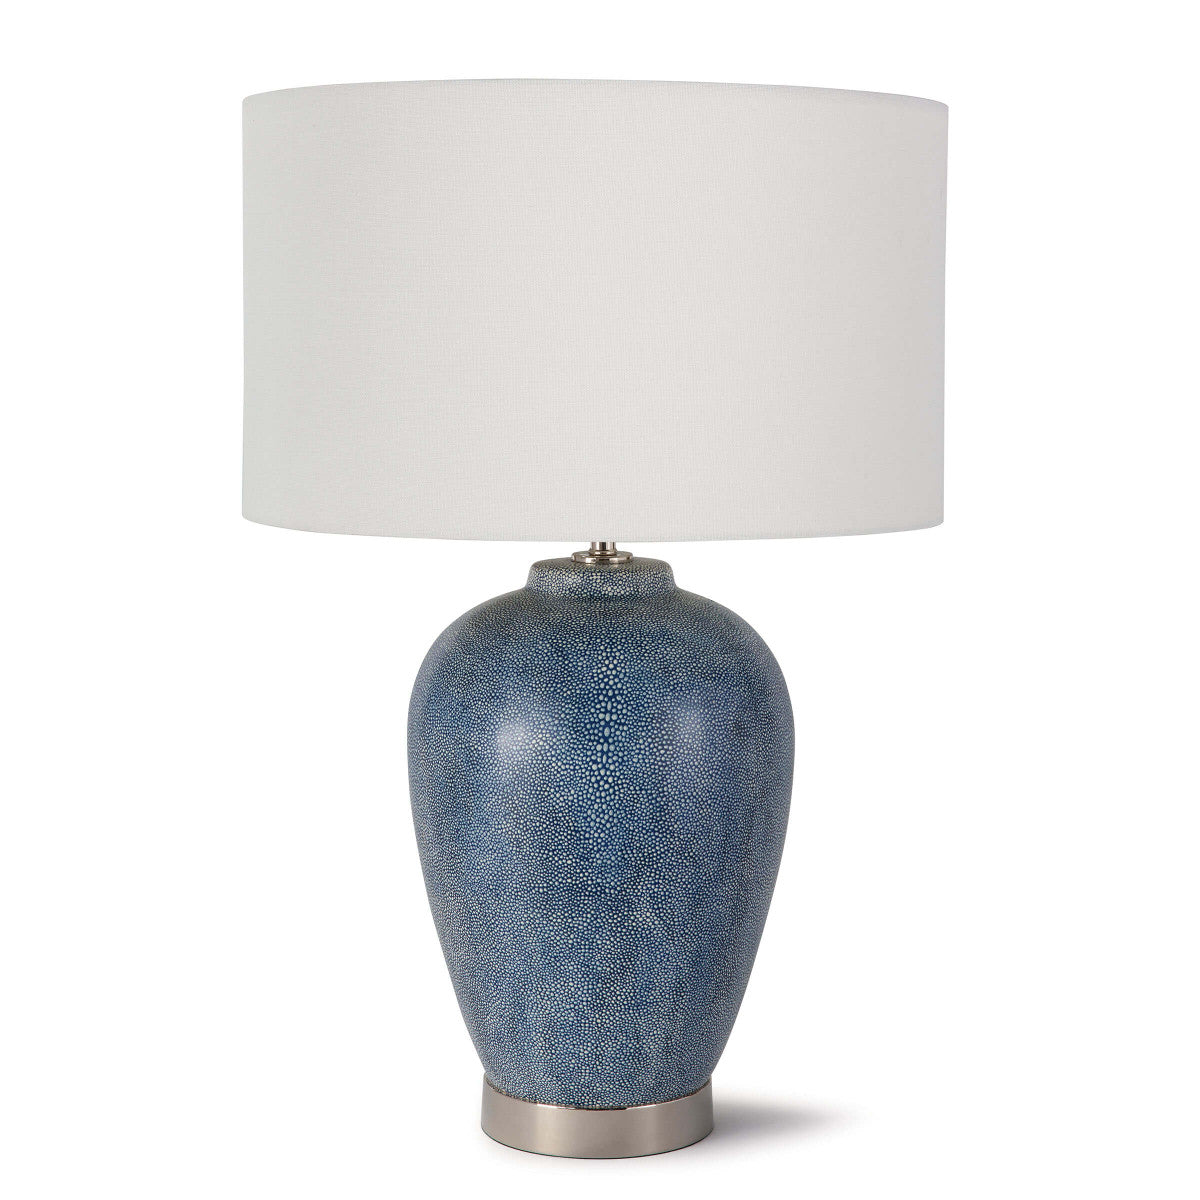 Presley Ceramic Shagreen Table Lamp 13-1266 - FLC Select